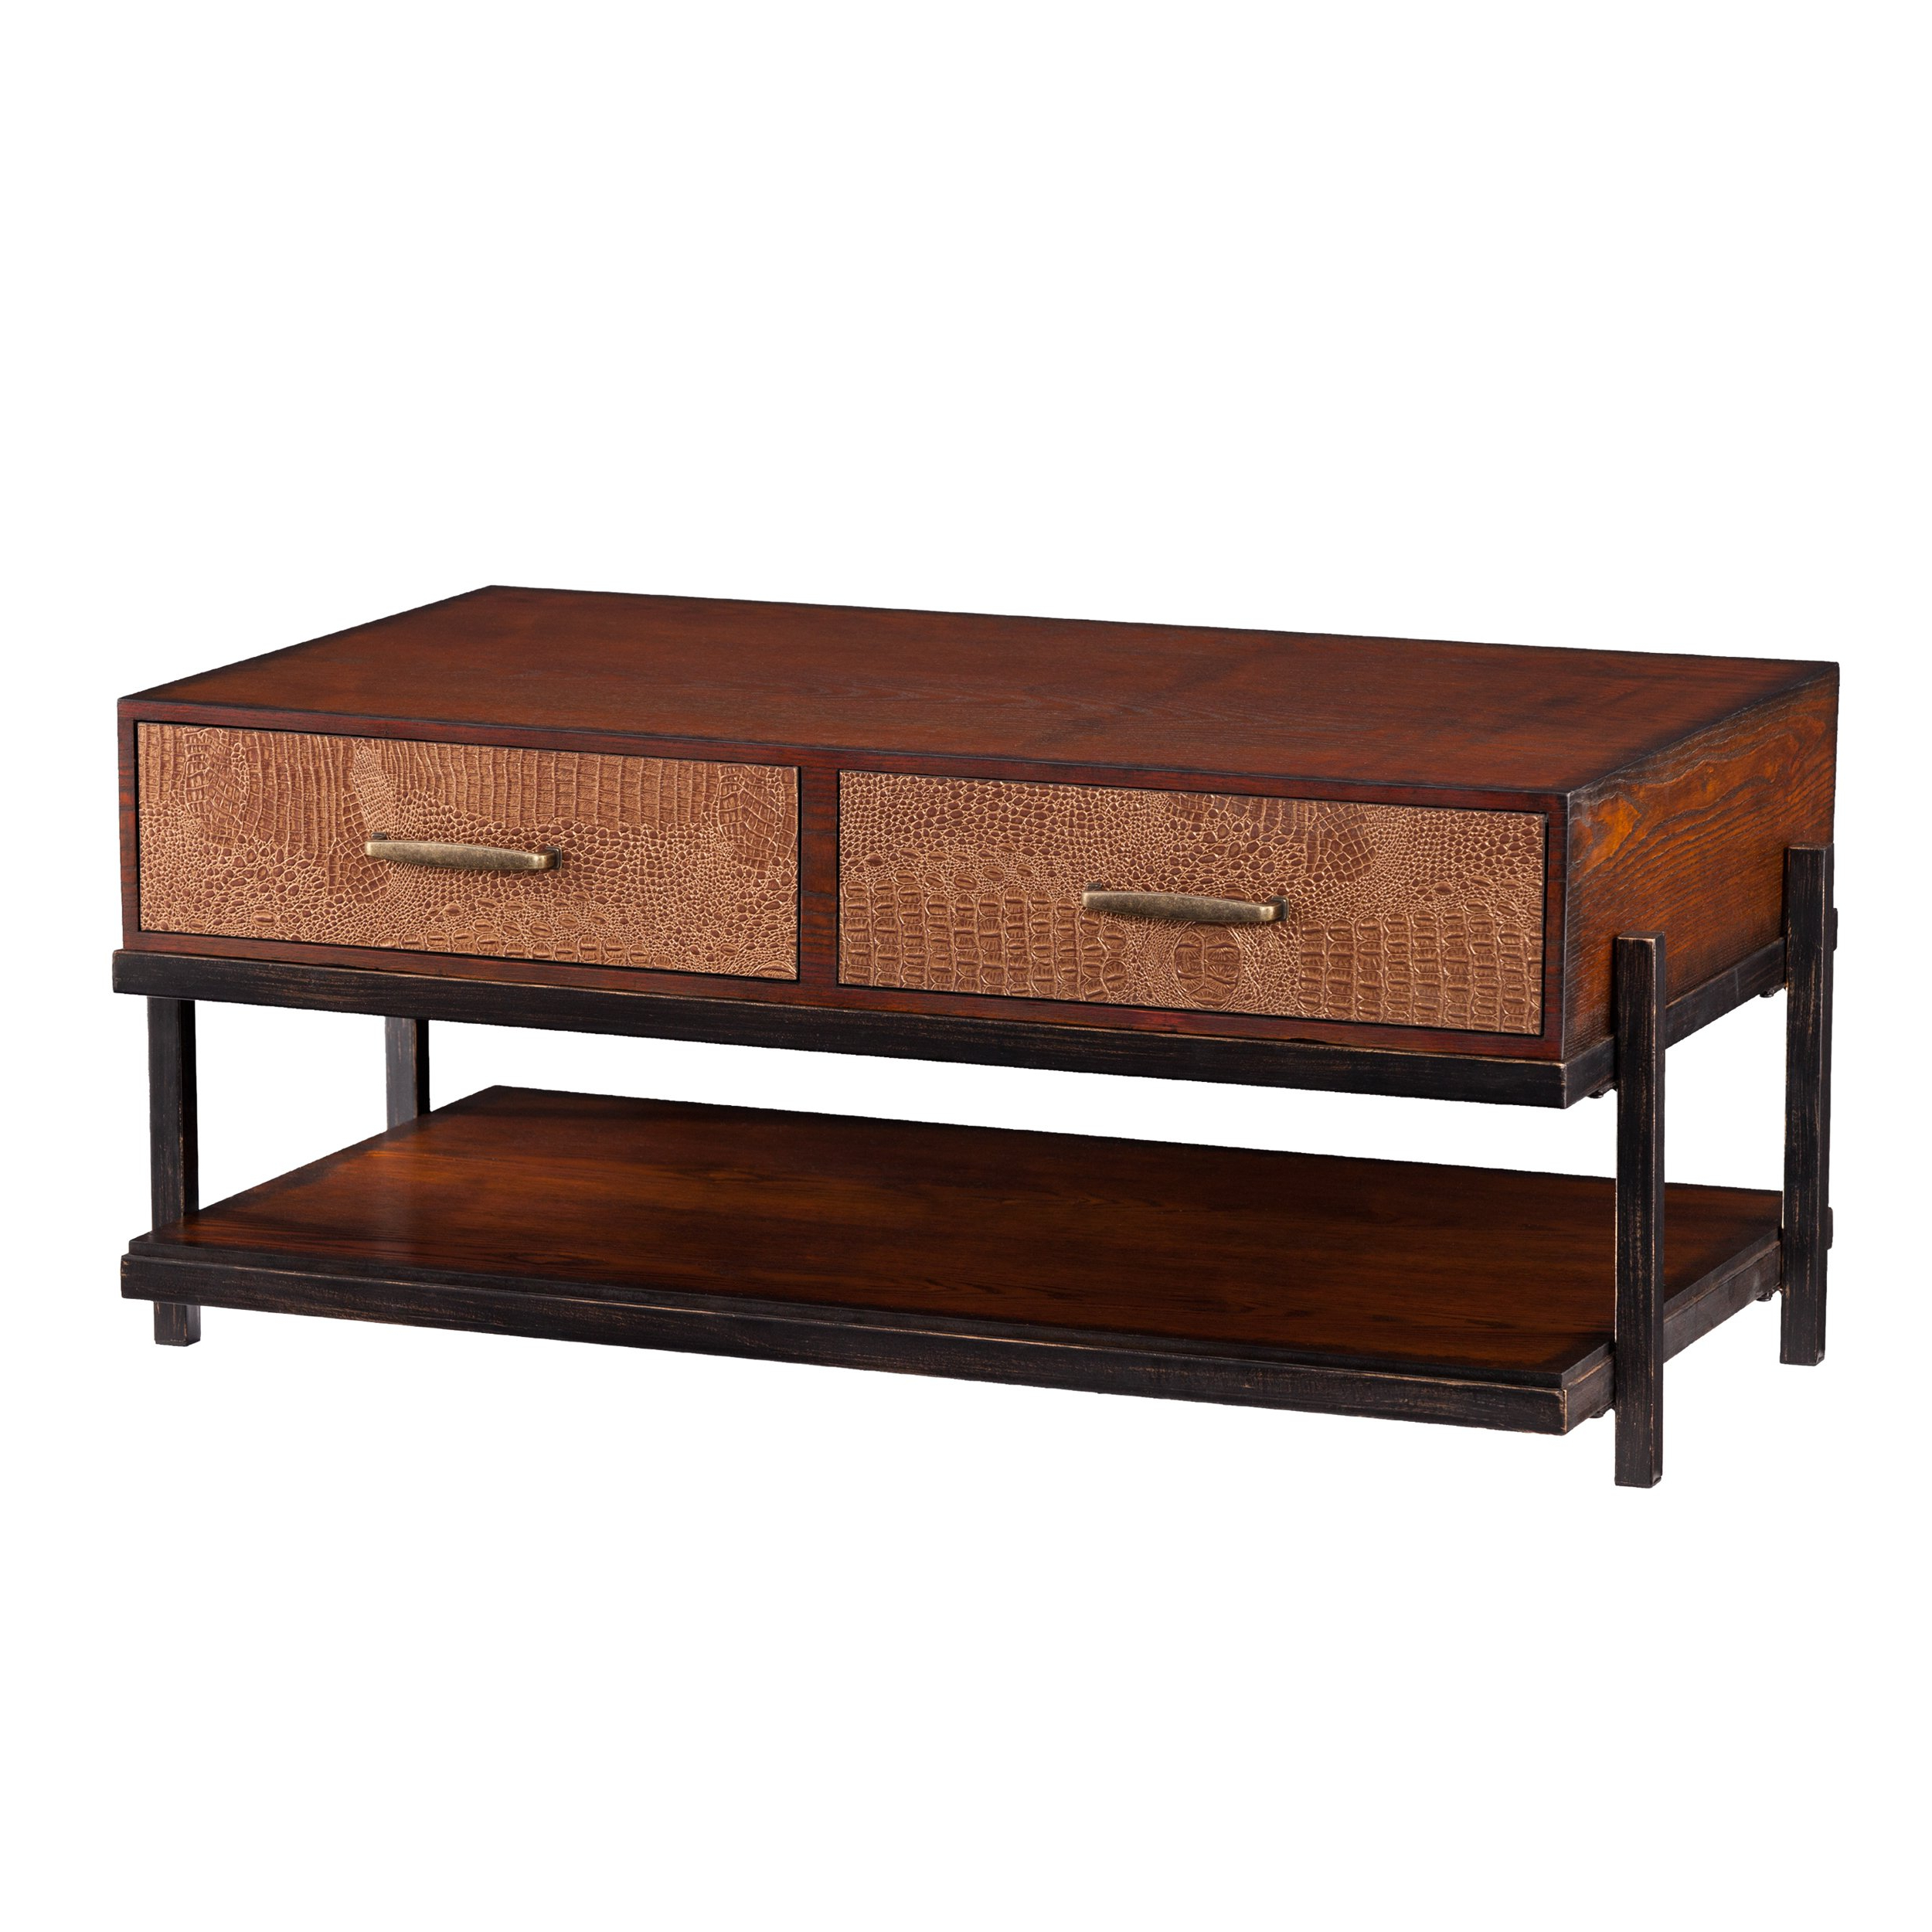 Shop Harper Blvd Palmer Cocktail/ Coffee Table – Free Shipping Today For Well Liked Palmer Storage Cocktail Tables (Gallery 9 of 20)